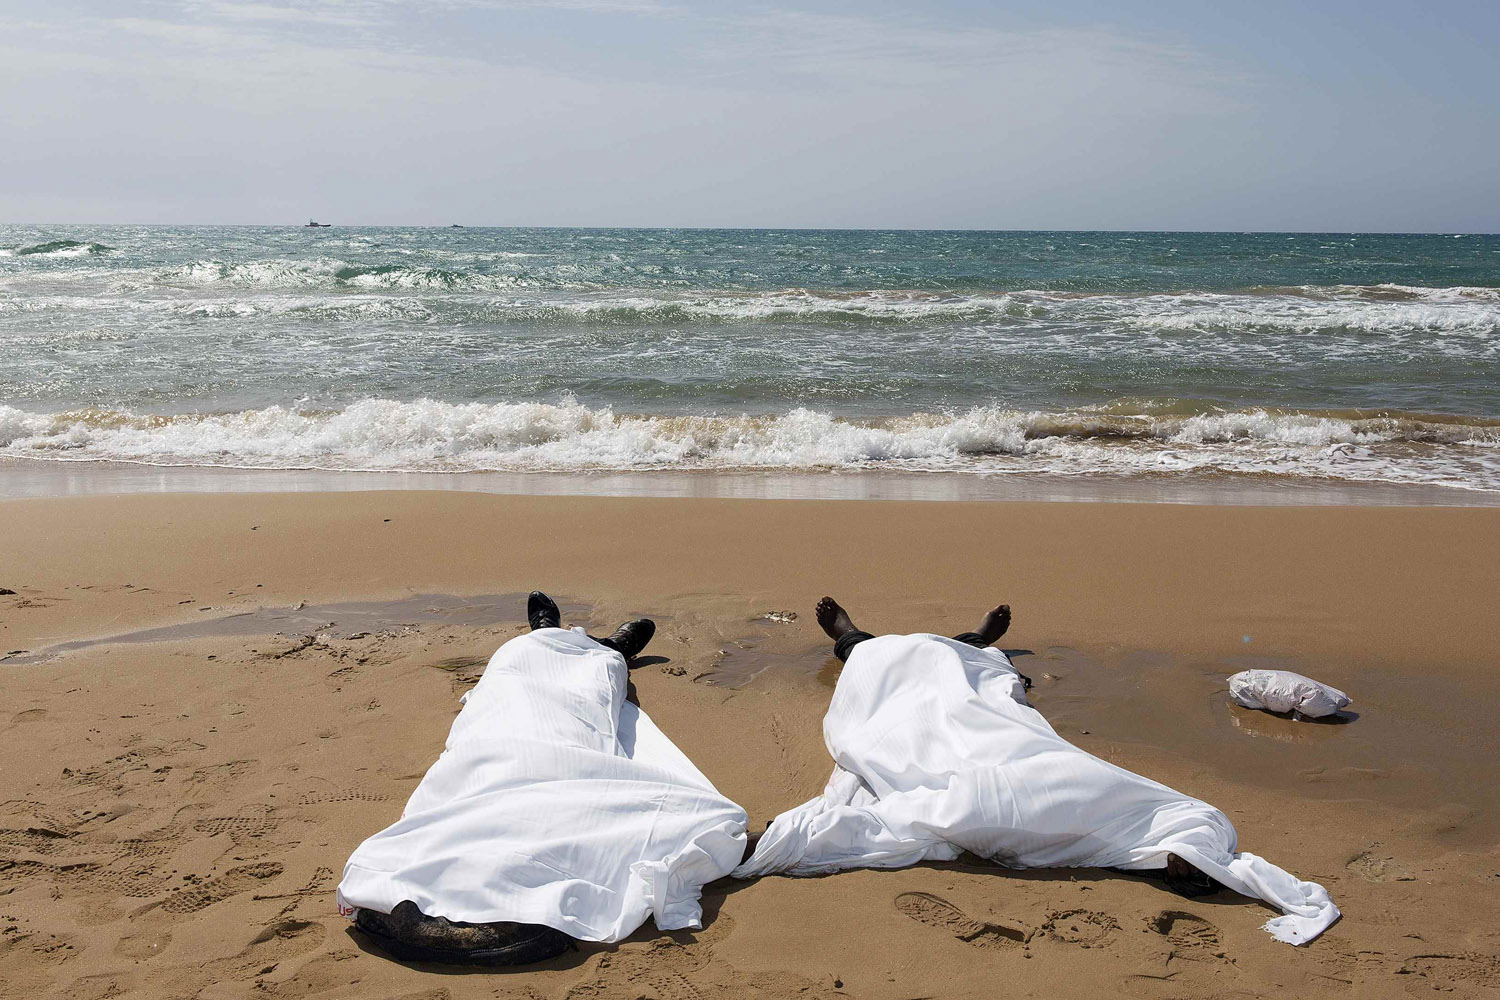 Sept. 30, 2013. Bodies of migrants who drowned lie on the beach in the Sicilian village of Sampieri in Italy.